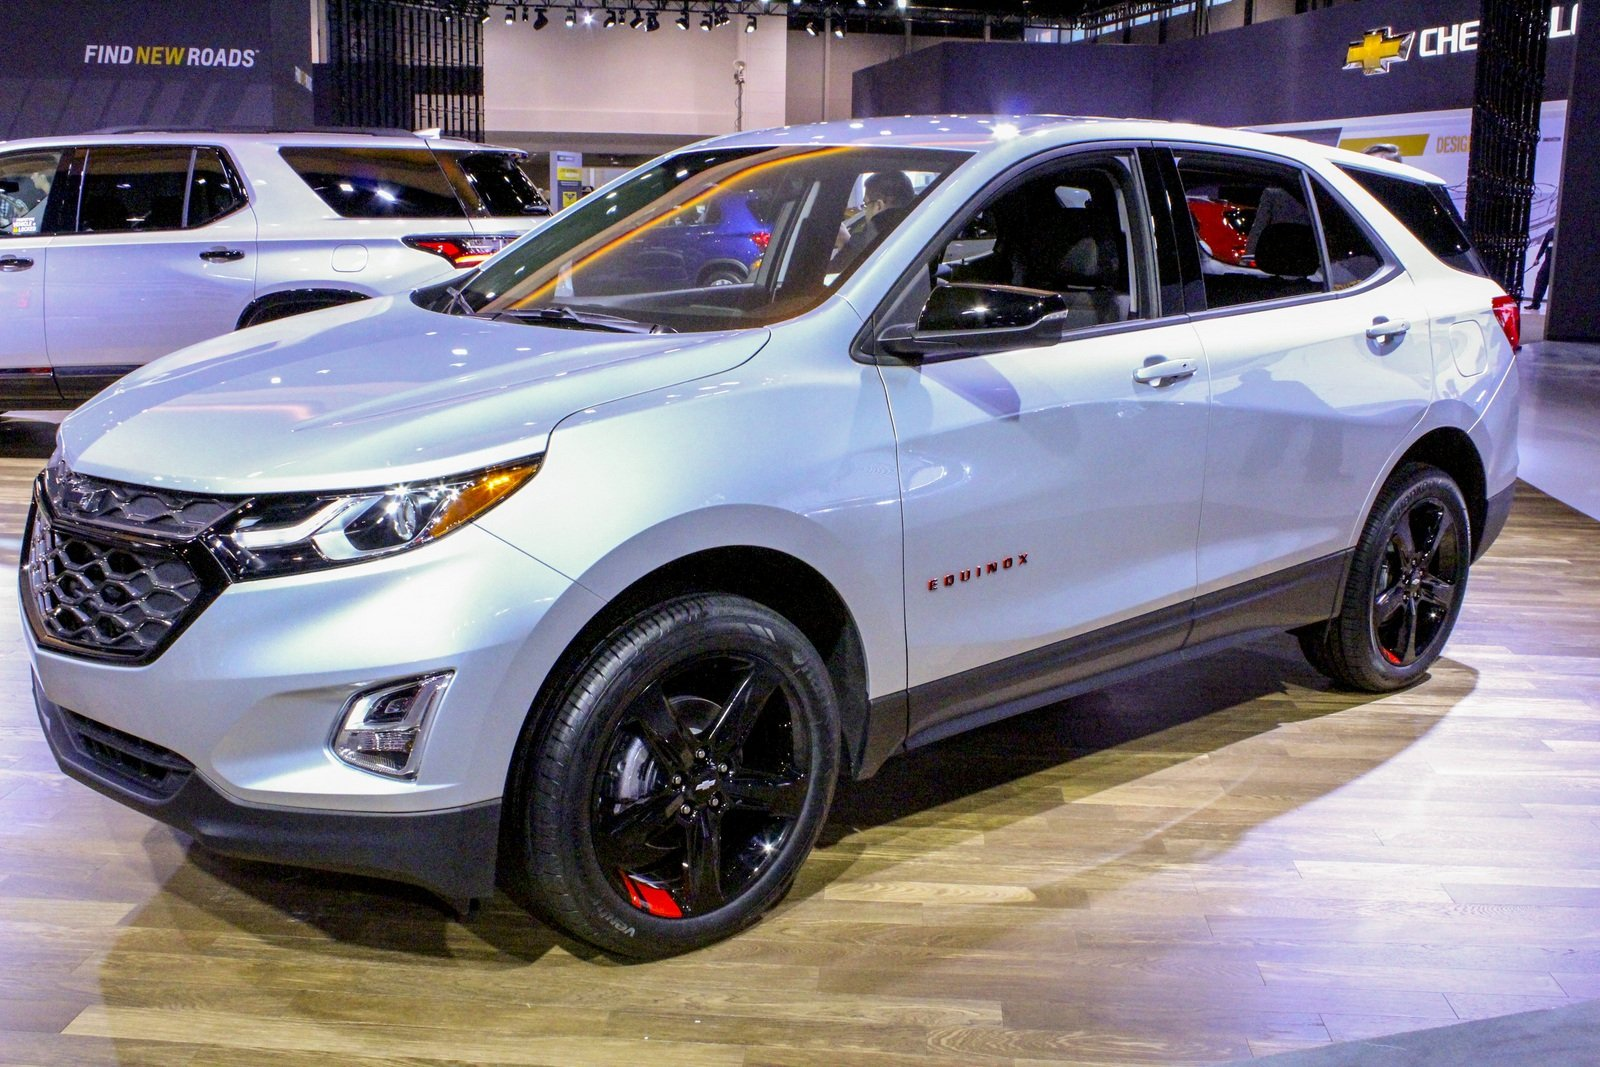 2017 chevrolet equinox redline edition picture 705354 car review top speed. Black Bedroom Furniture Sets. Home Design Ideas